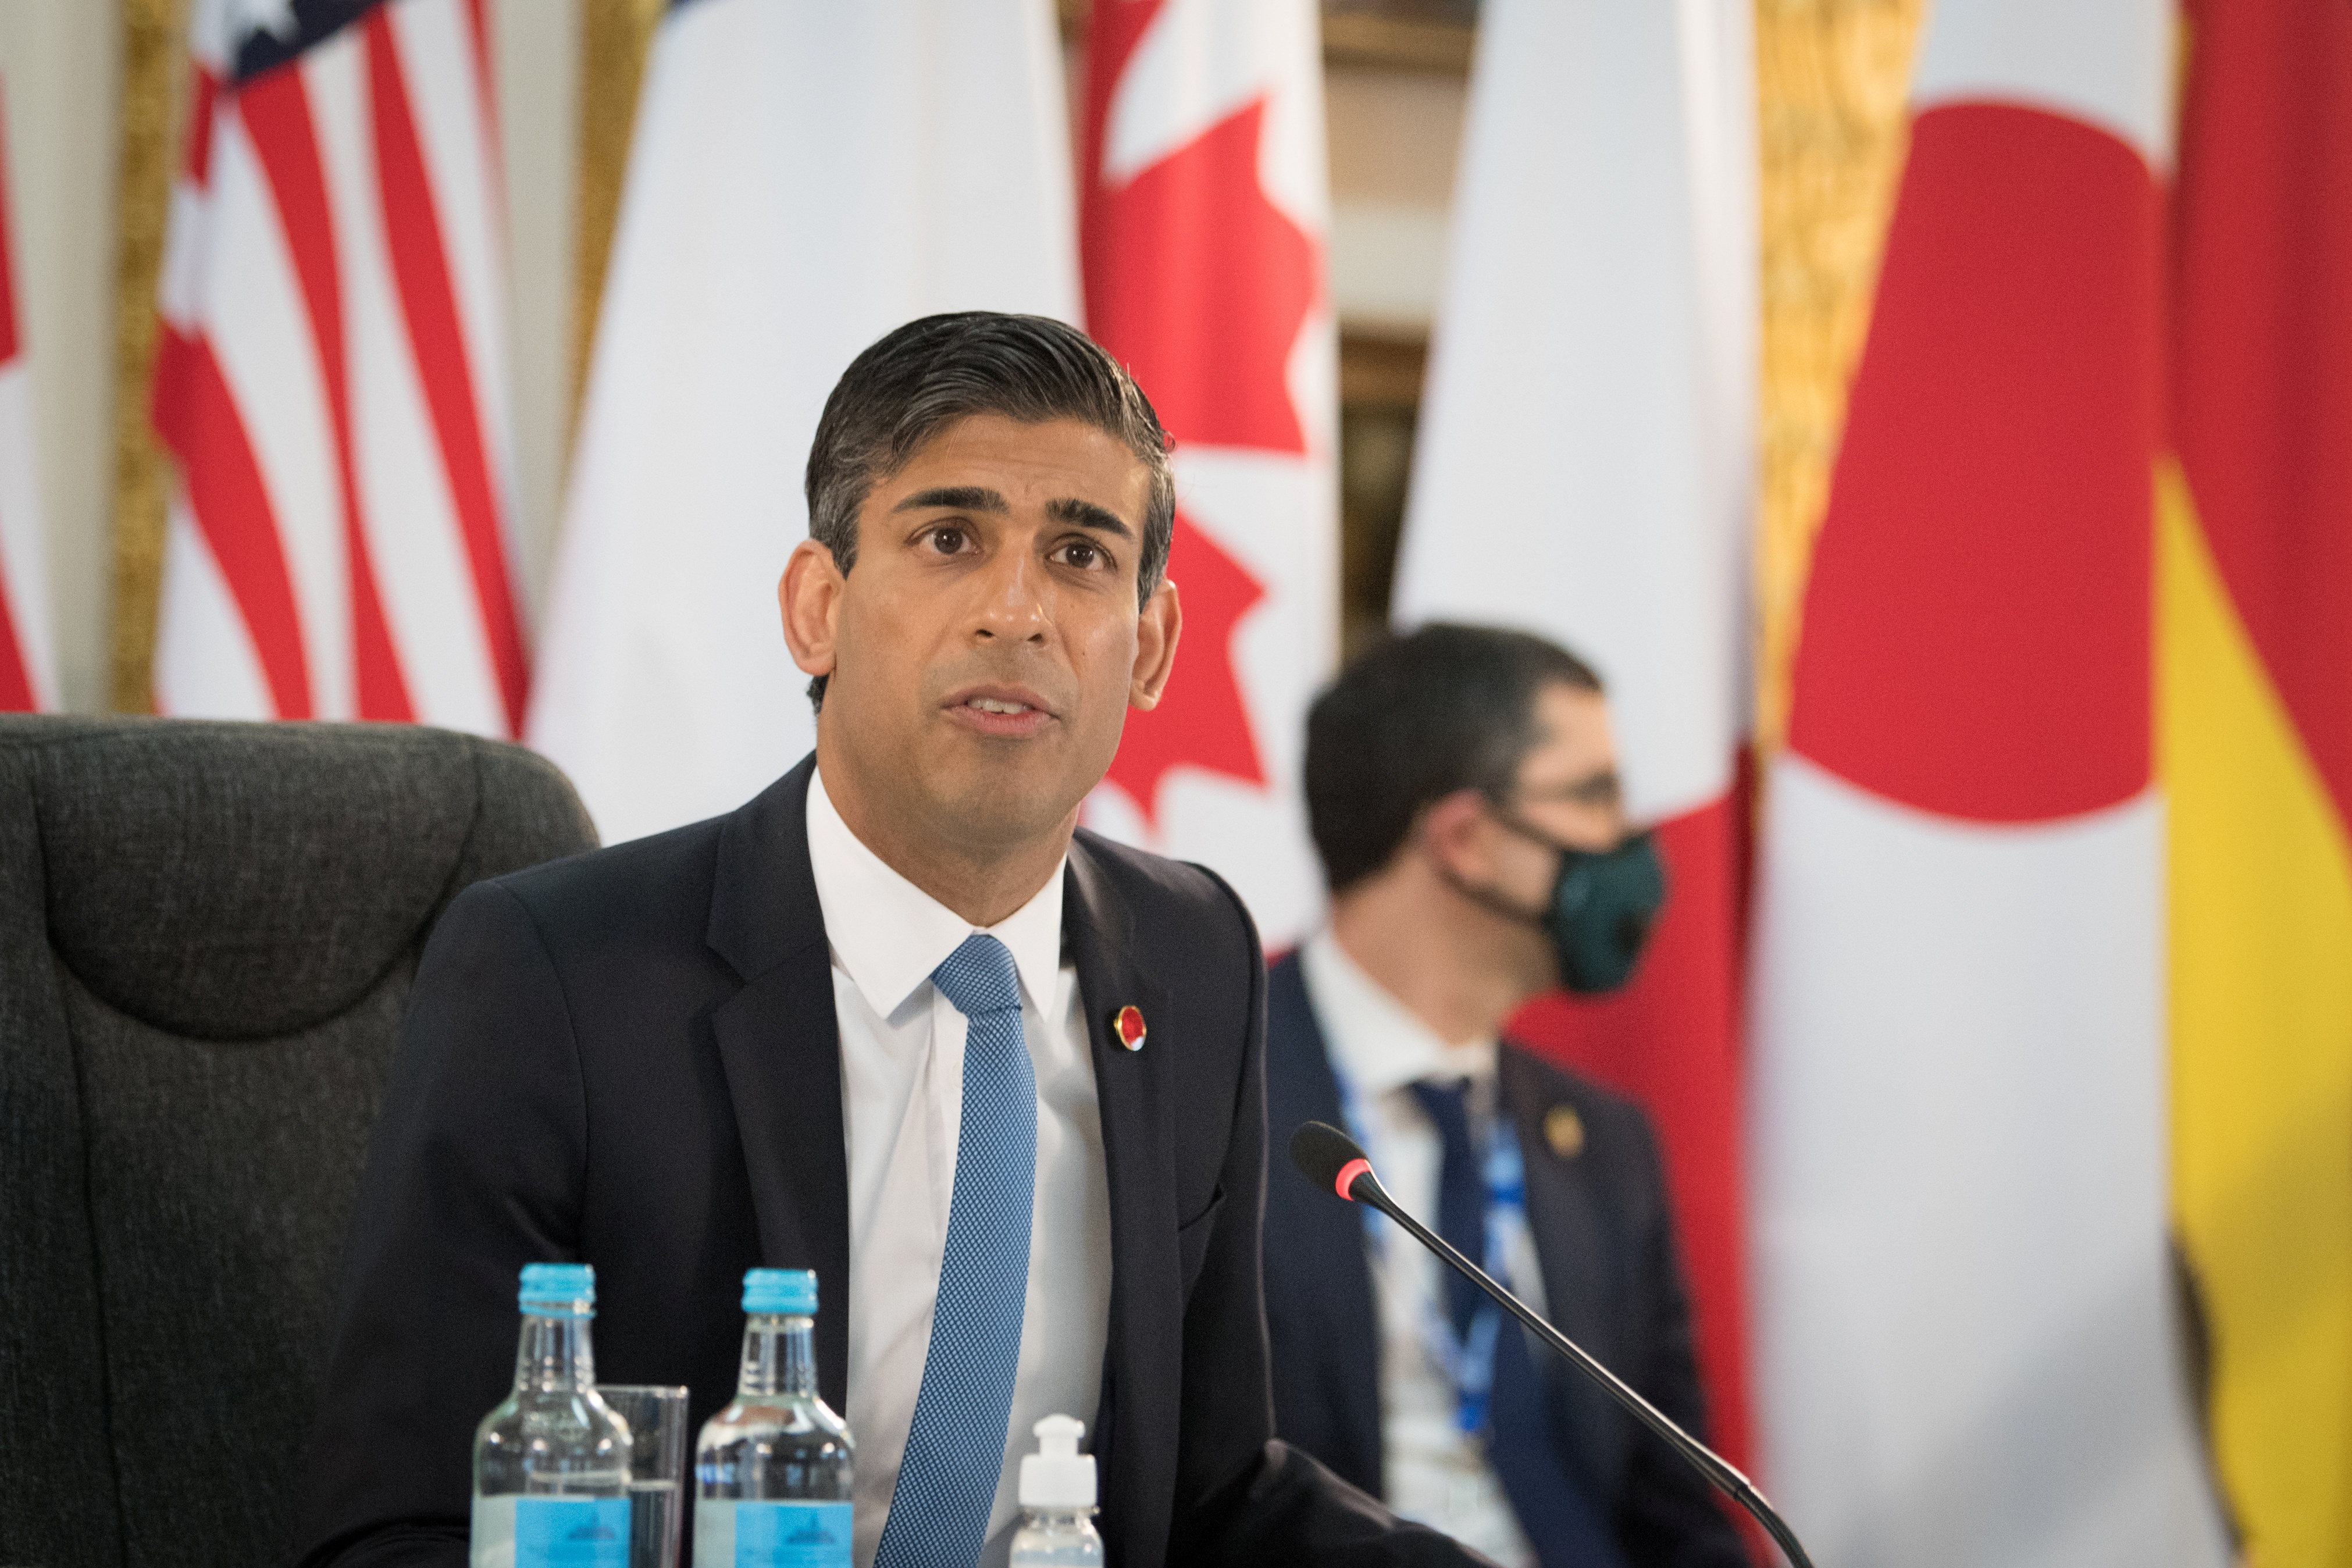 Britain's Chancellor of the Exchequer Rishi Sunak attends a meeting of finance ministers from across the G7 nations ahead of the G7 leaders' summit, at Lancaster House in London, Britain June 4, 2021. Stefan Rousseau/PA Wire/Pool via REUTERS/File photo